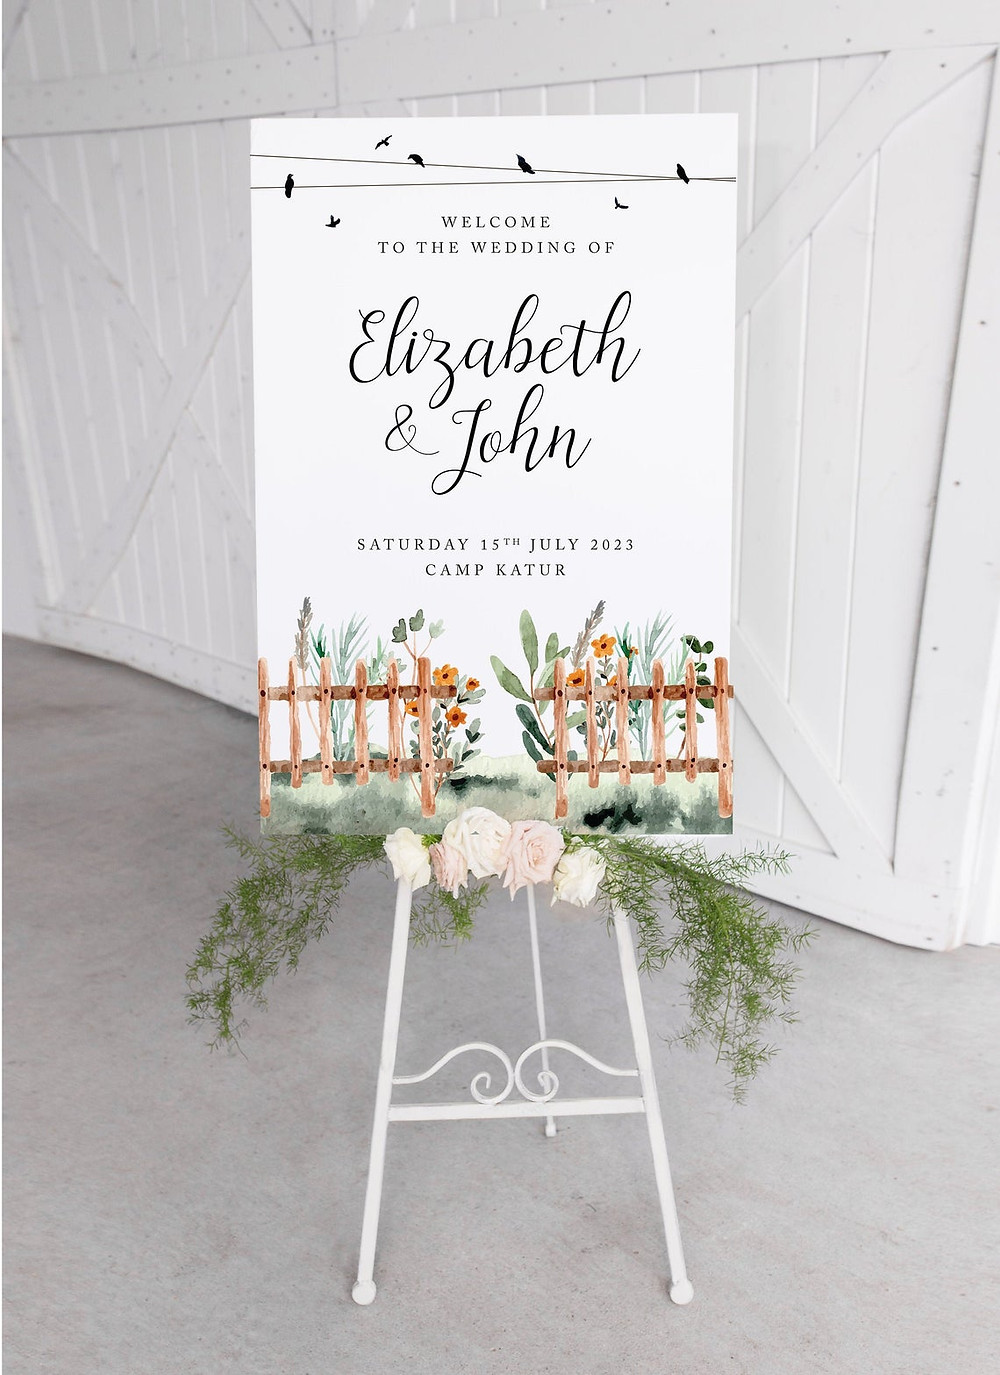 festival style wedding sign